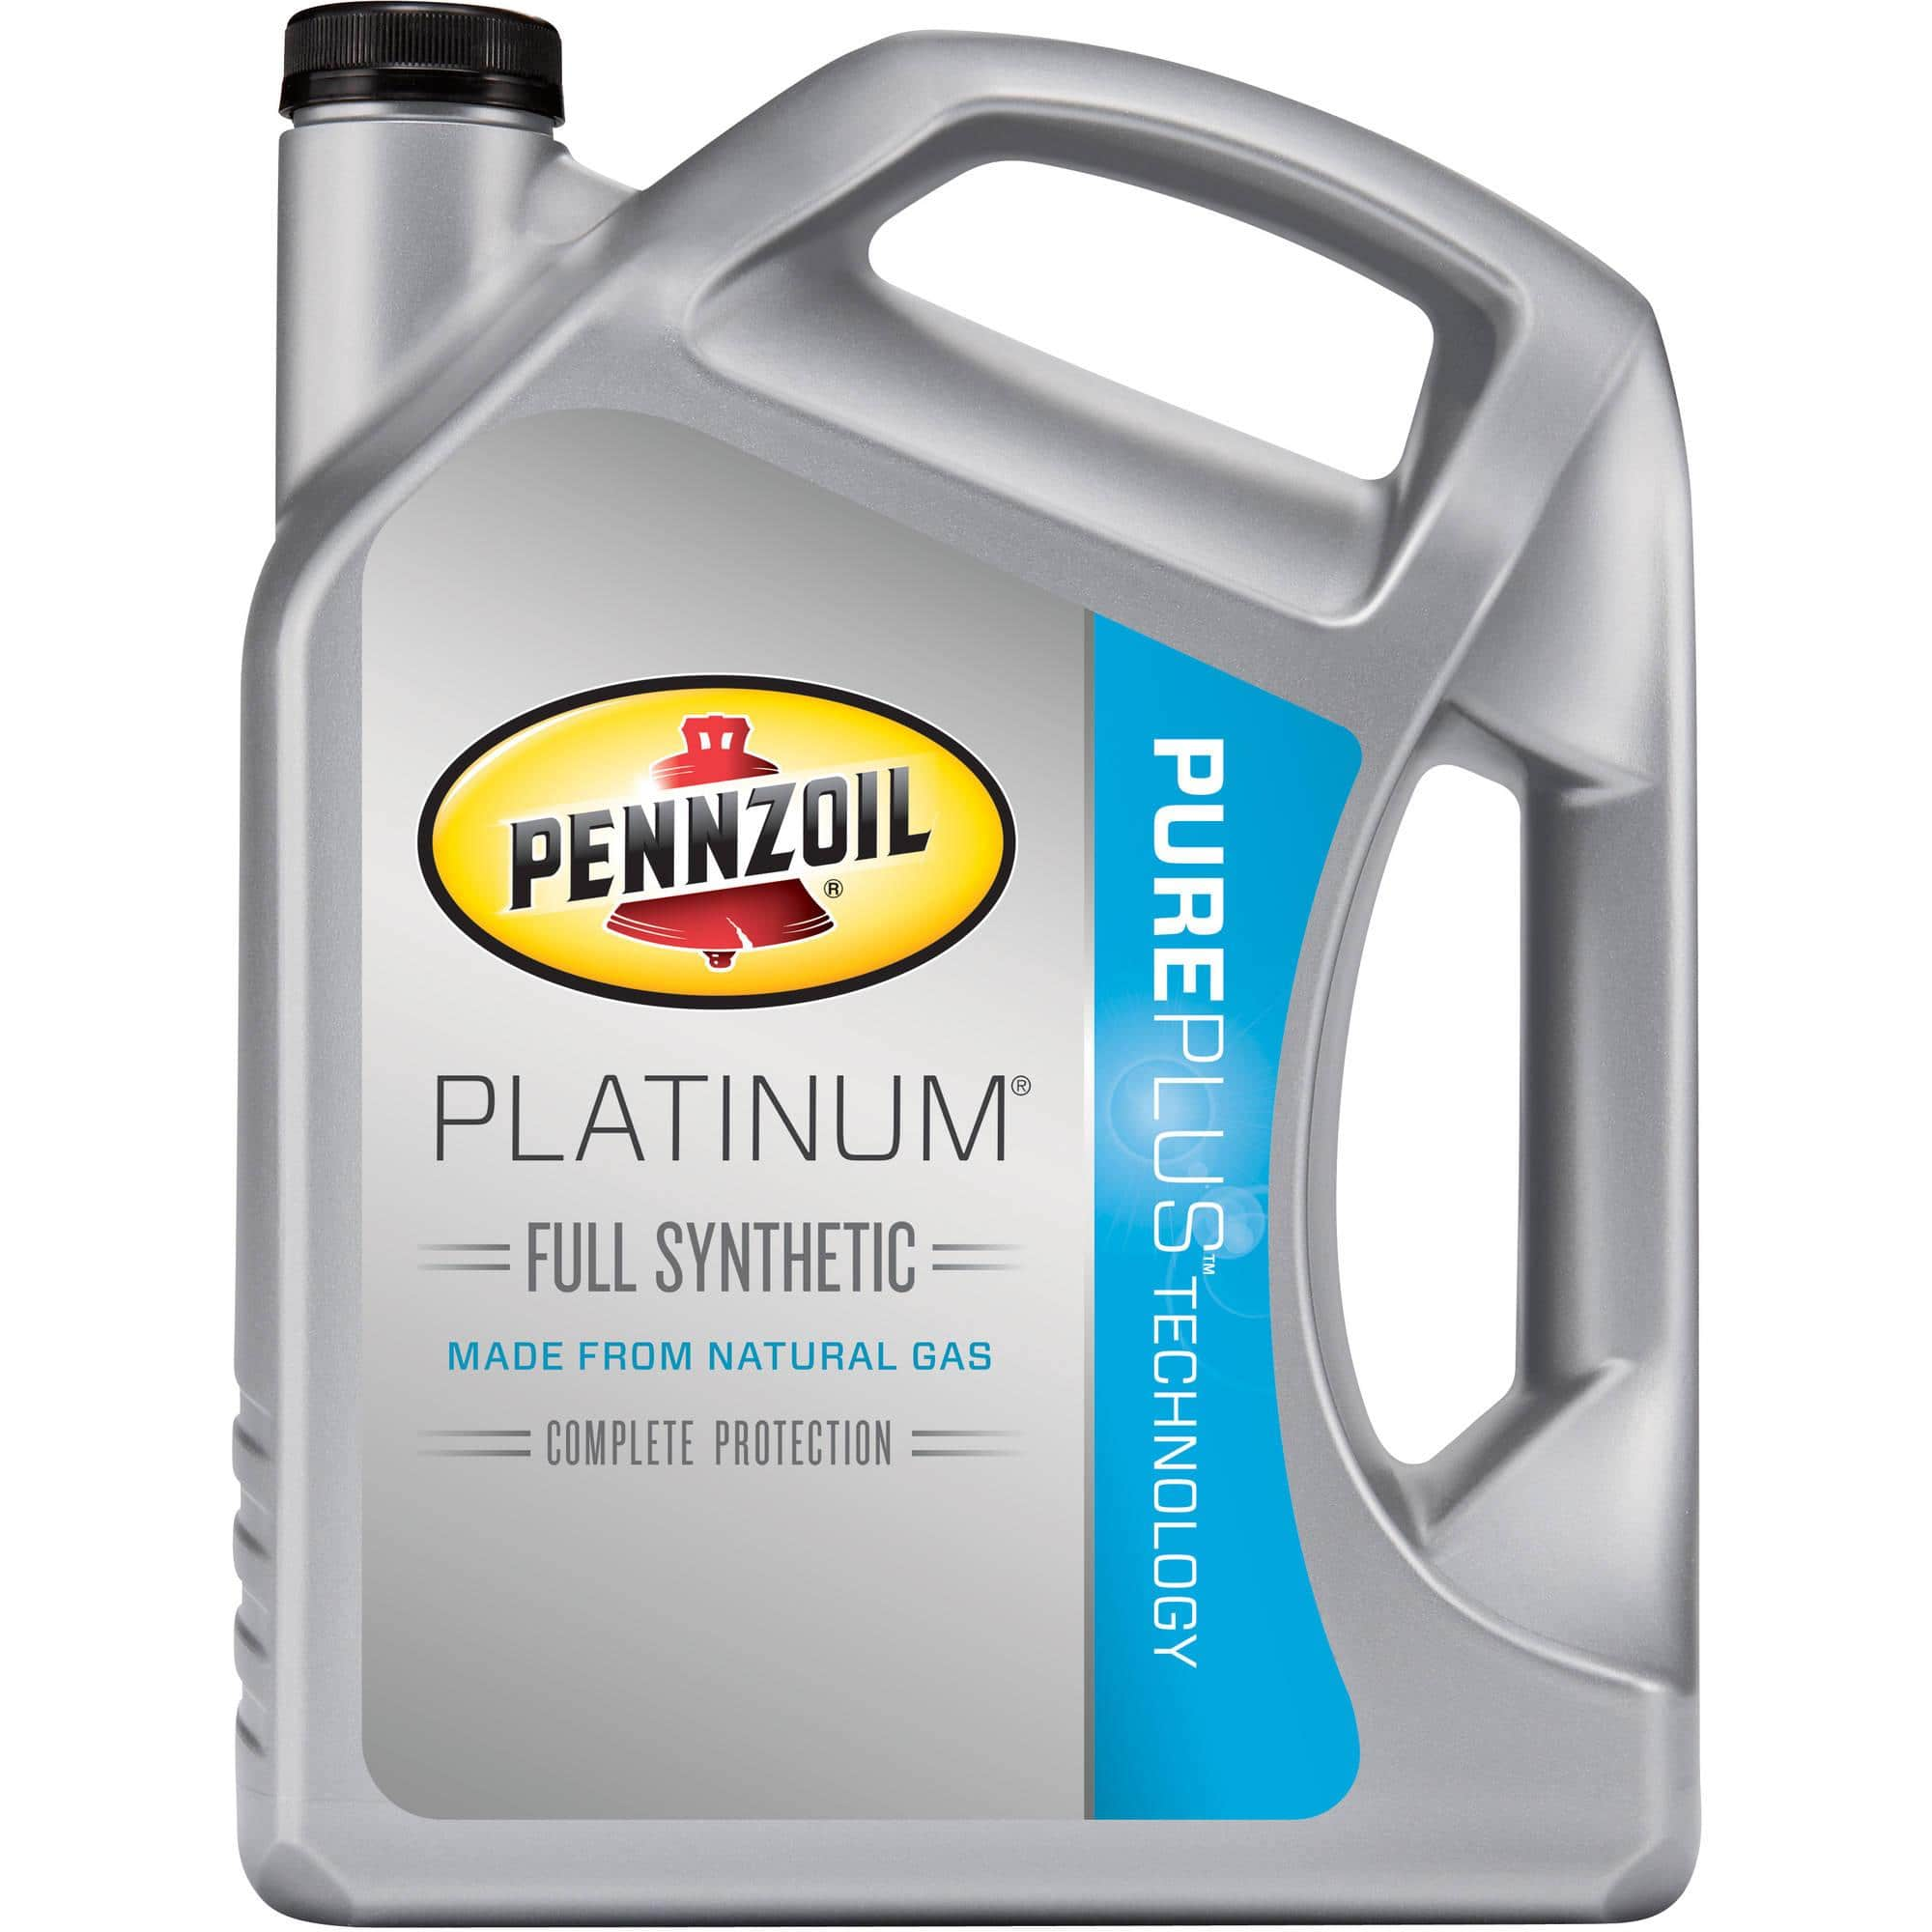 5 quart pennzoil platinum full synthetic motor oil for Pennzoil platinum 5w 20 synthetic motor oil